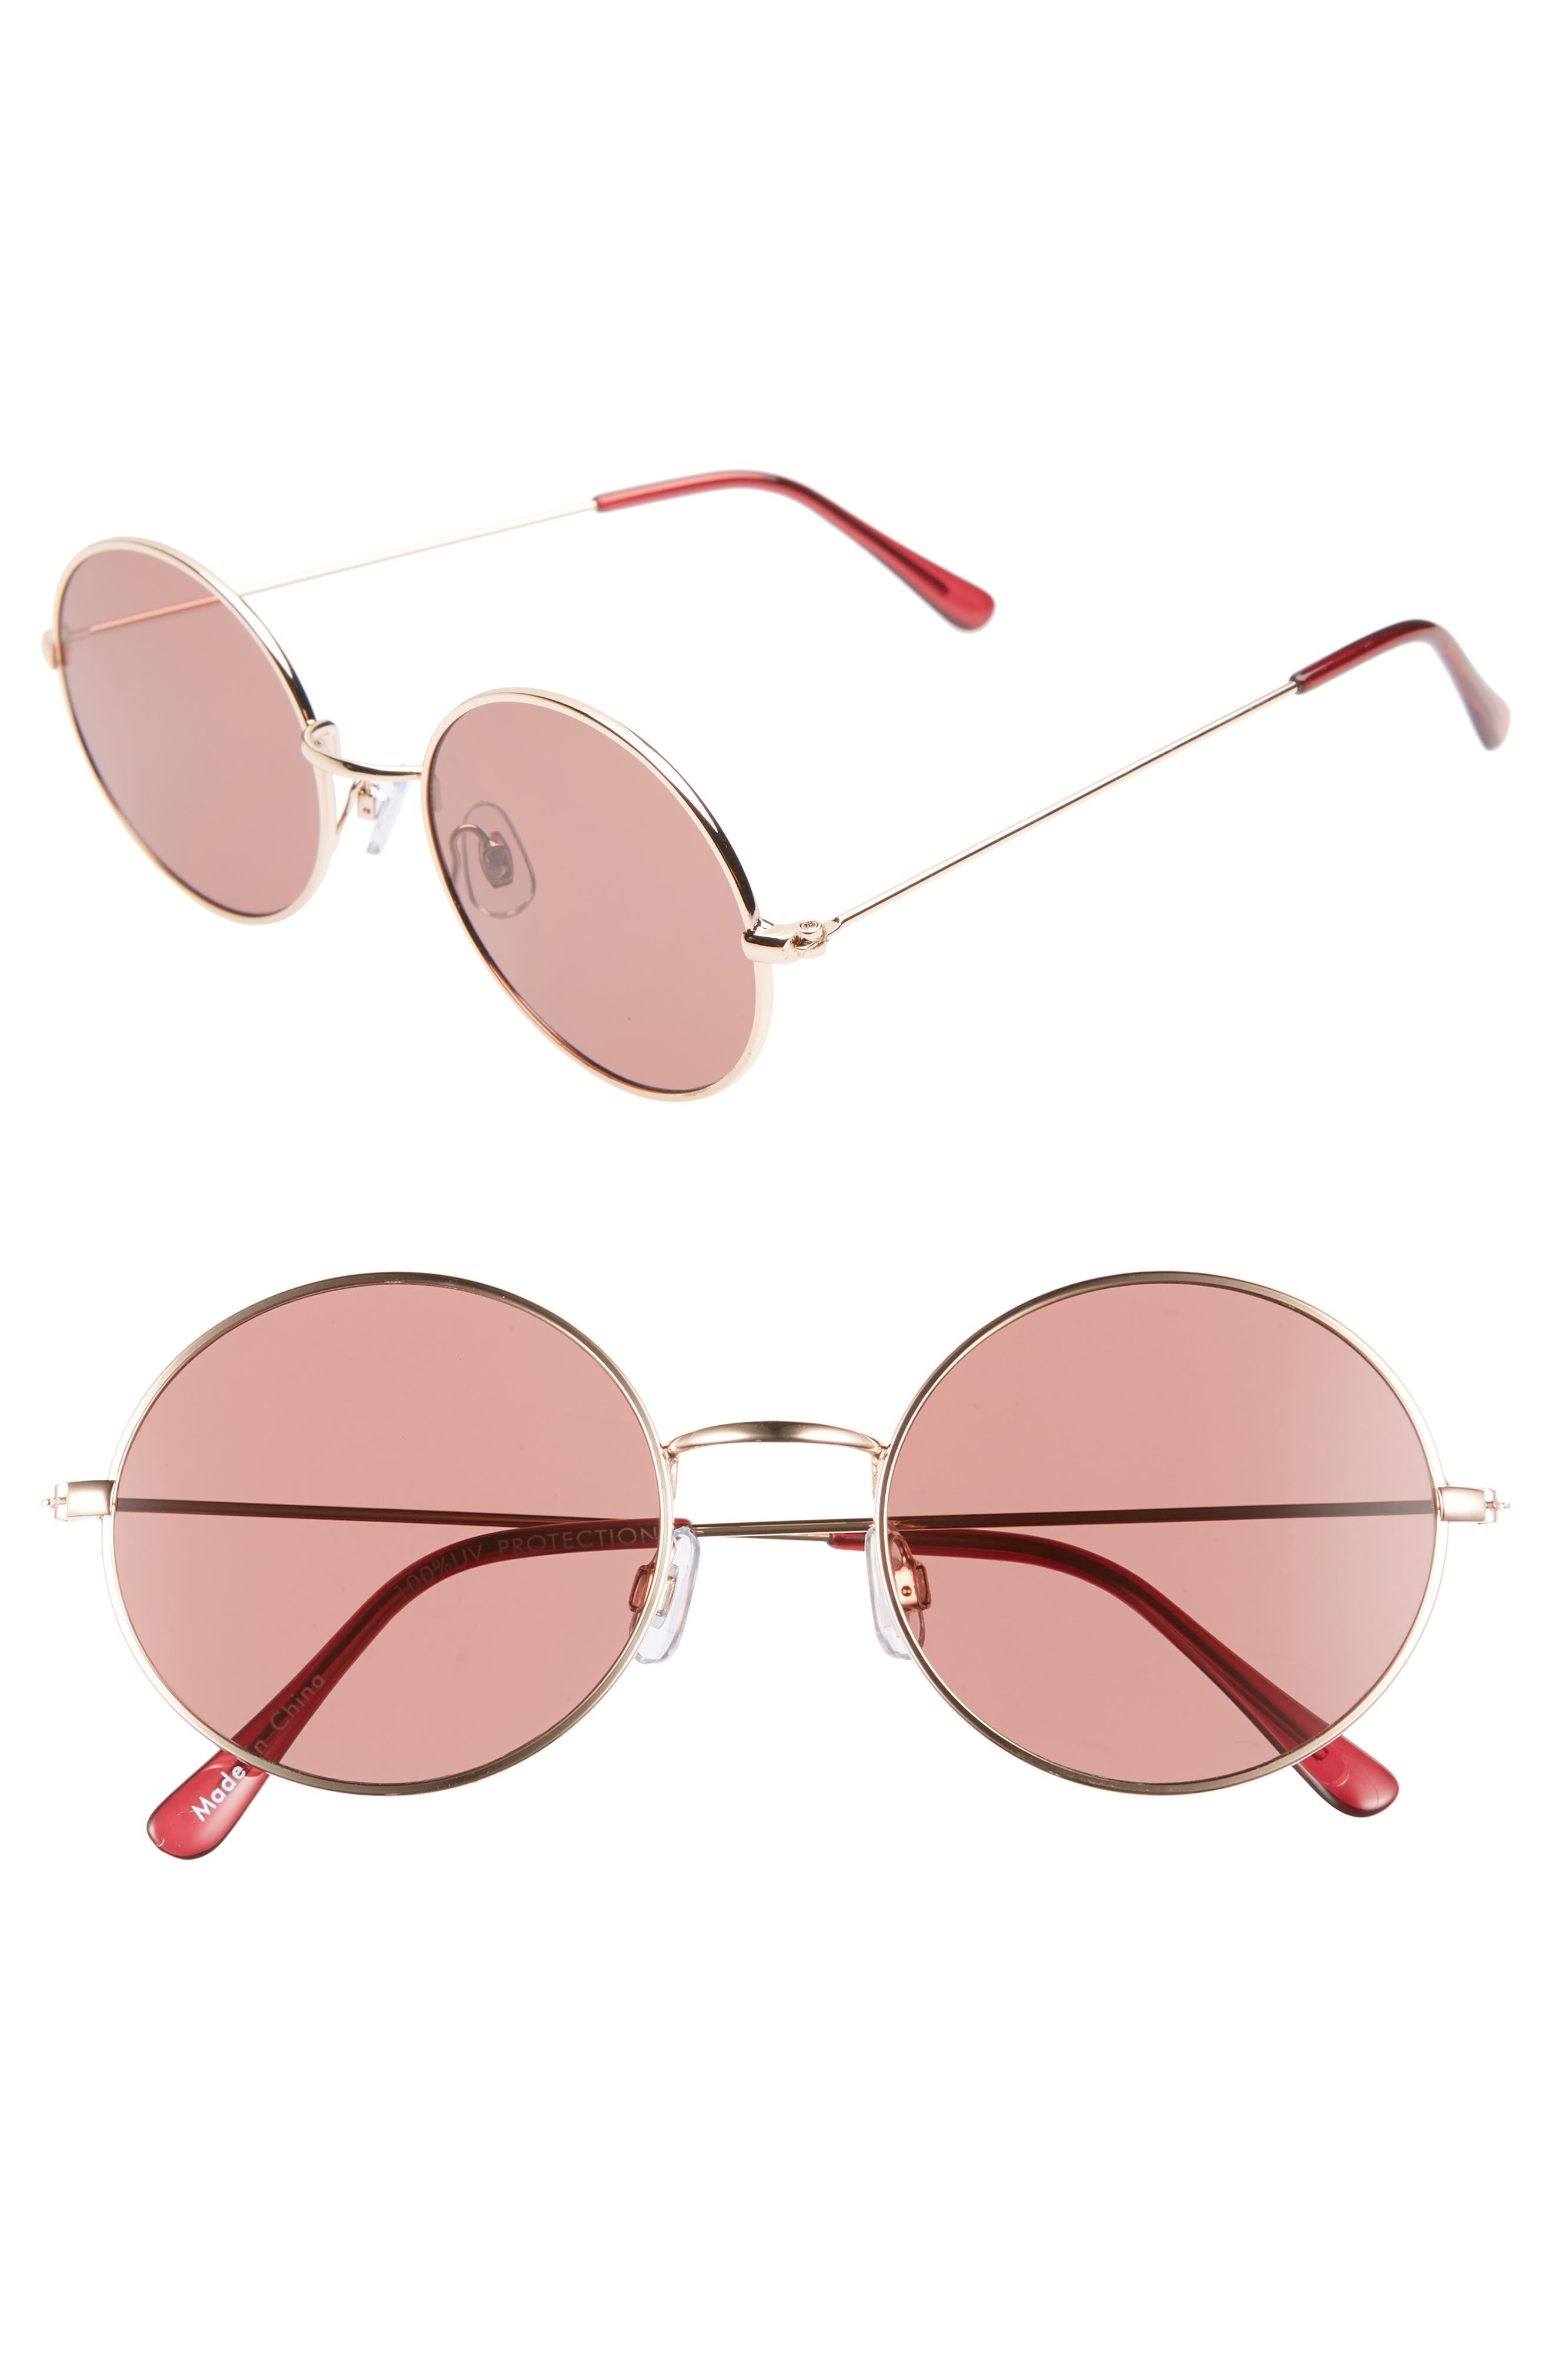 53mm Flat Round Sunglasses,                             Main thumbnail 1, color,                             GOLD/ BROWN